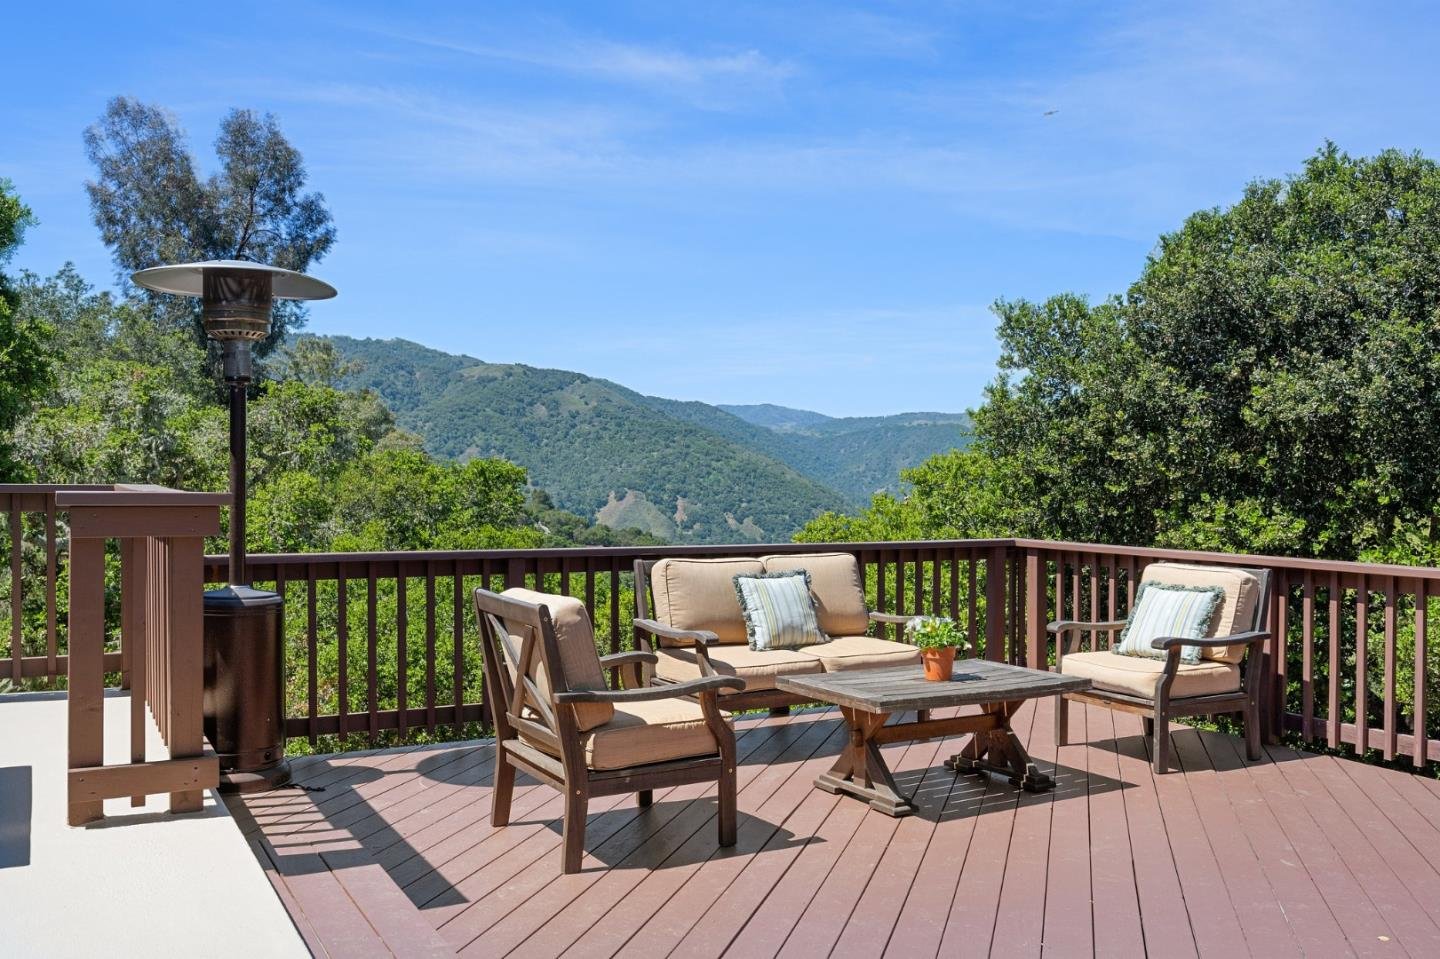 Turnkey Carmel Valley four-bedroom and three-bath home with big Garland Park views that is built to maximize the indoor-outdoor living afforded by the area's ideal climate. Off the gourmet kitchen is a patio that basks in the morning sun. The open kitchen with sit-up counters leads right into the living room with a luxurious fireplace, mountain views and double-sets of French doors that open to the expansive deck with southern exposure. On the main level there is an owners' suite and two guest bedrooms along with an addition family room with rich oak wood floors. Downstairs is a separate en-suite that has exterior access to the lower patio and lawn. There is additional flex-space that can be an office, gym or game room. This home marries the warmth of the classic Carmel Valley adobe bricks with an updates like the new radiant heat system and an updated networked home. The homes location is close to amenities of Carmel Valley village and maximizes living the Carmel Valley lifestyle.